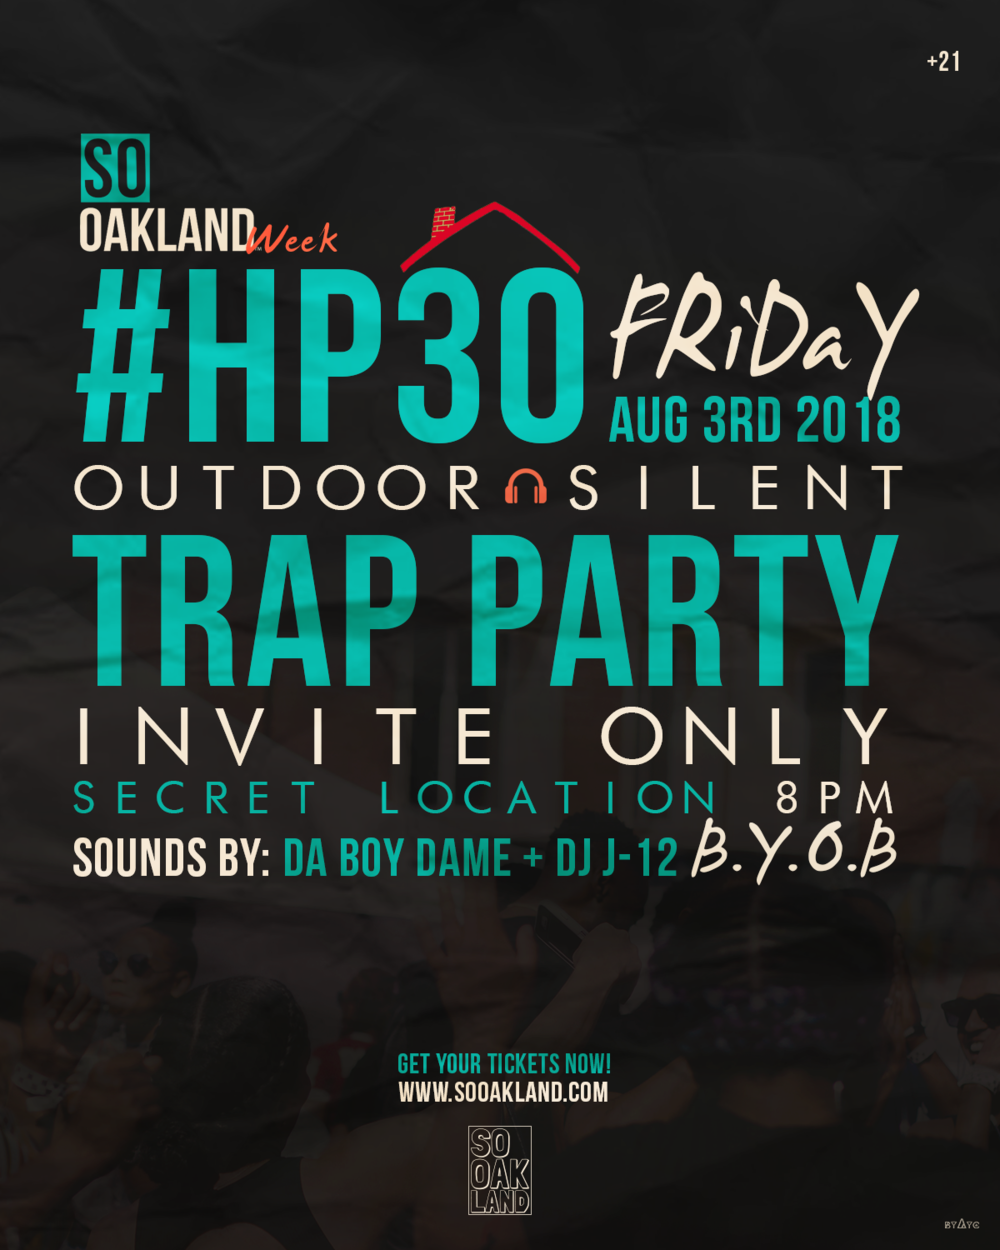 FRIDAY AUG 3RD @8PM  OUTDOOR SILENT TRAP PARTY @SECRET LOCATION  *sign up below to    receive invite